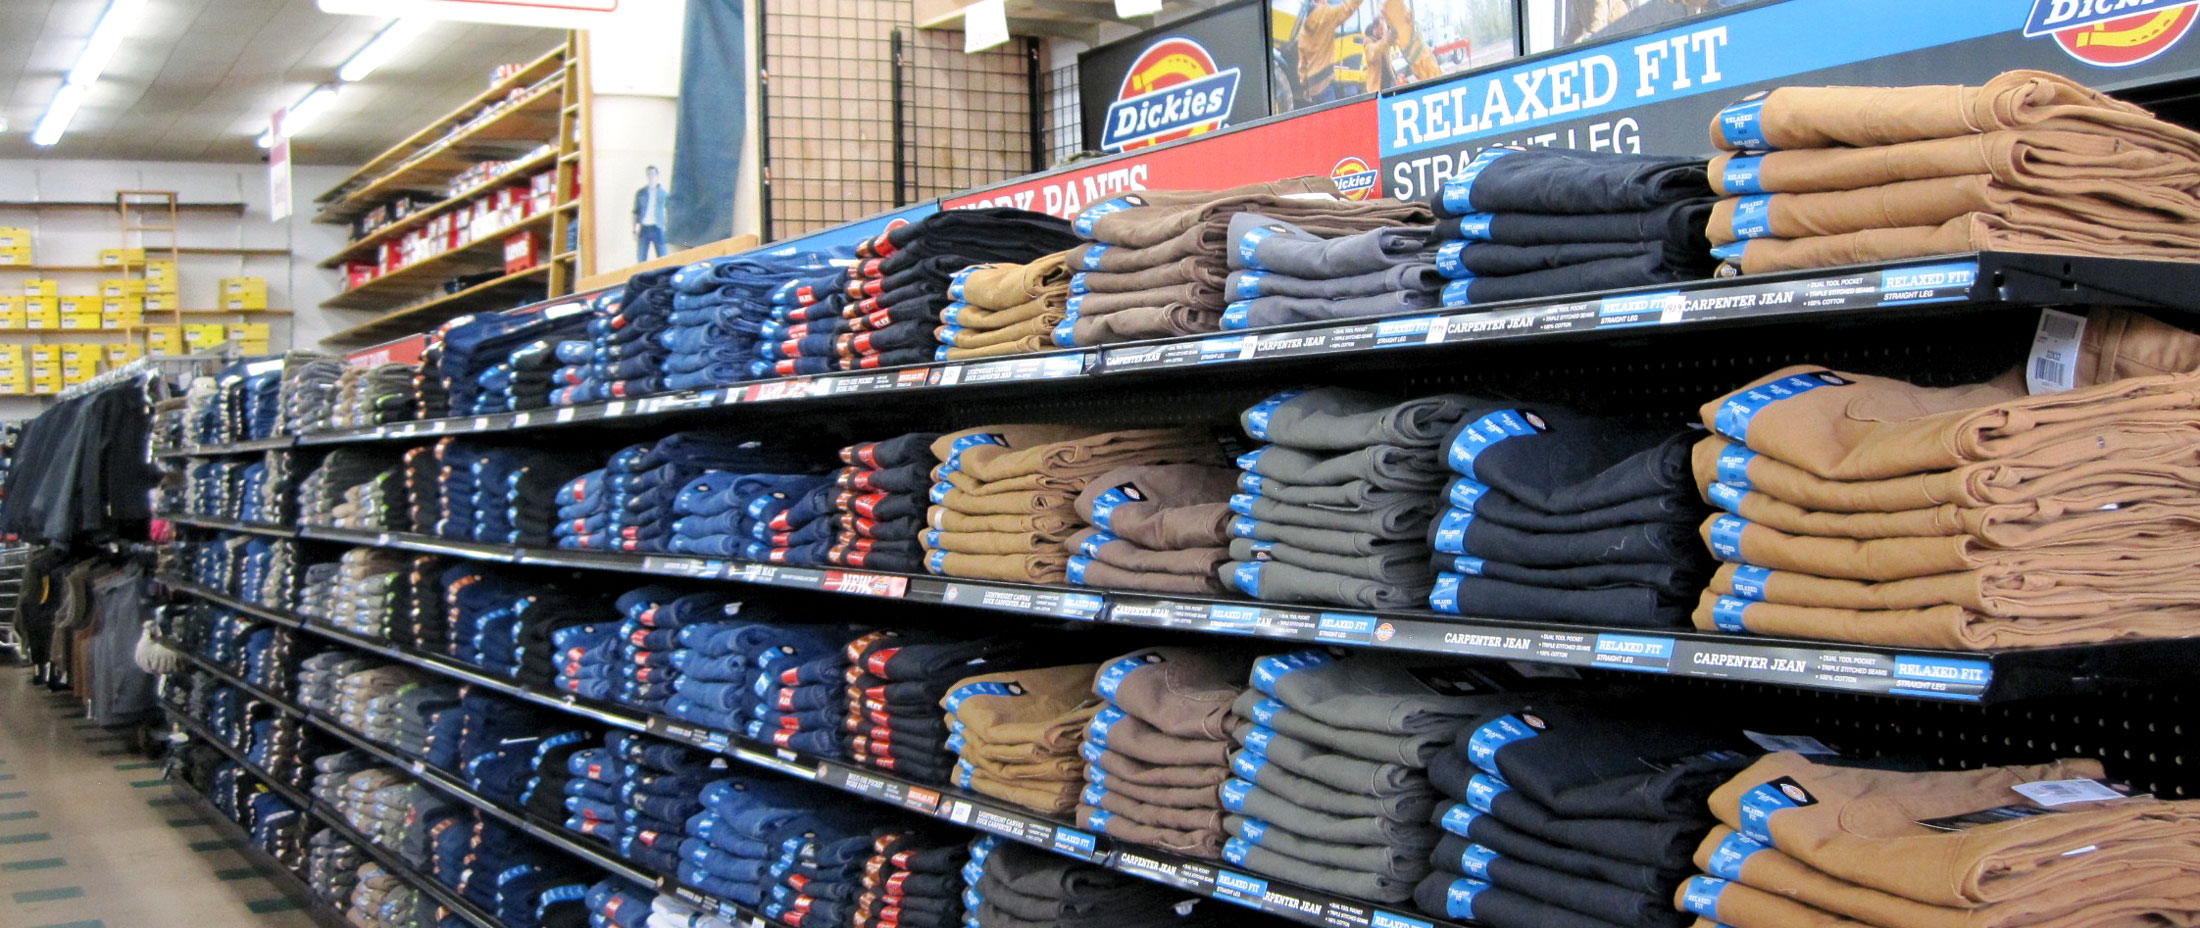 Dickies-Clothes-Aisle